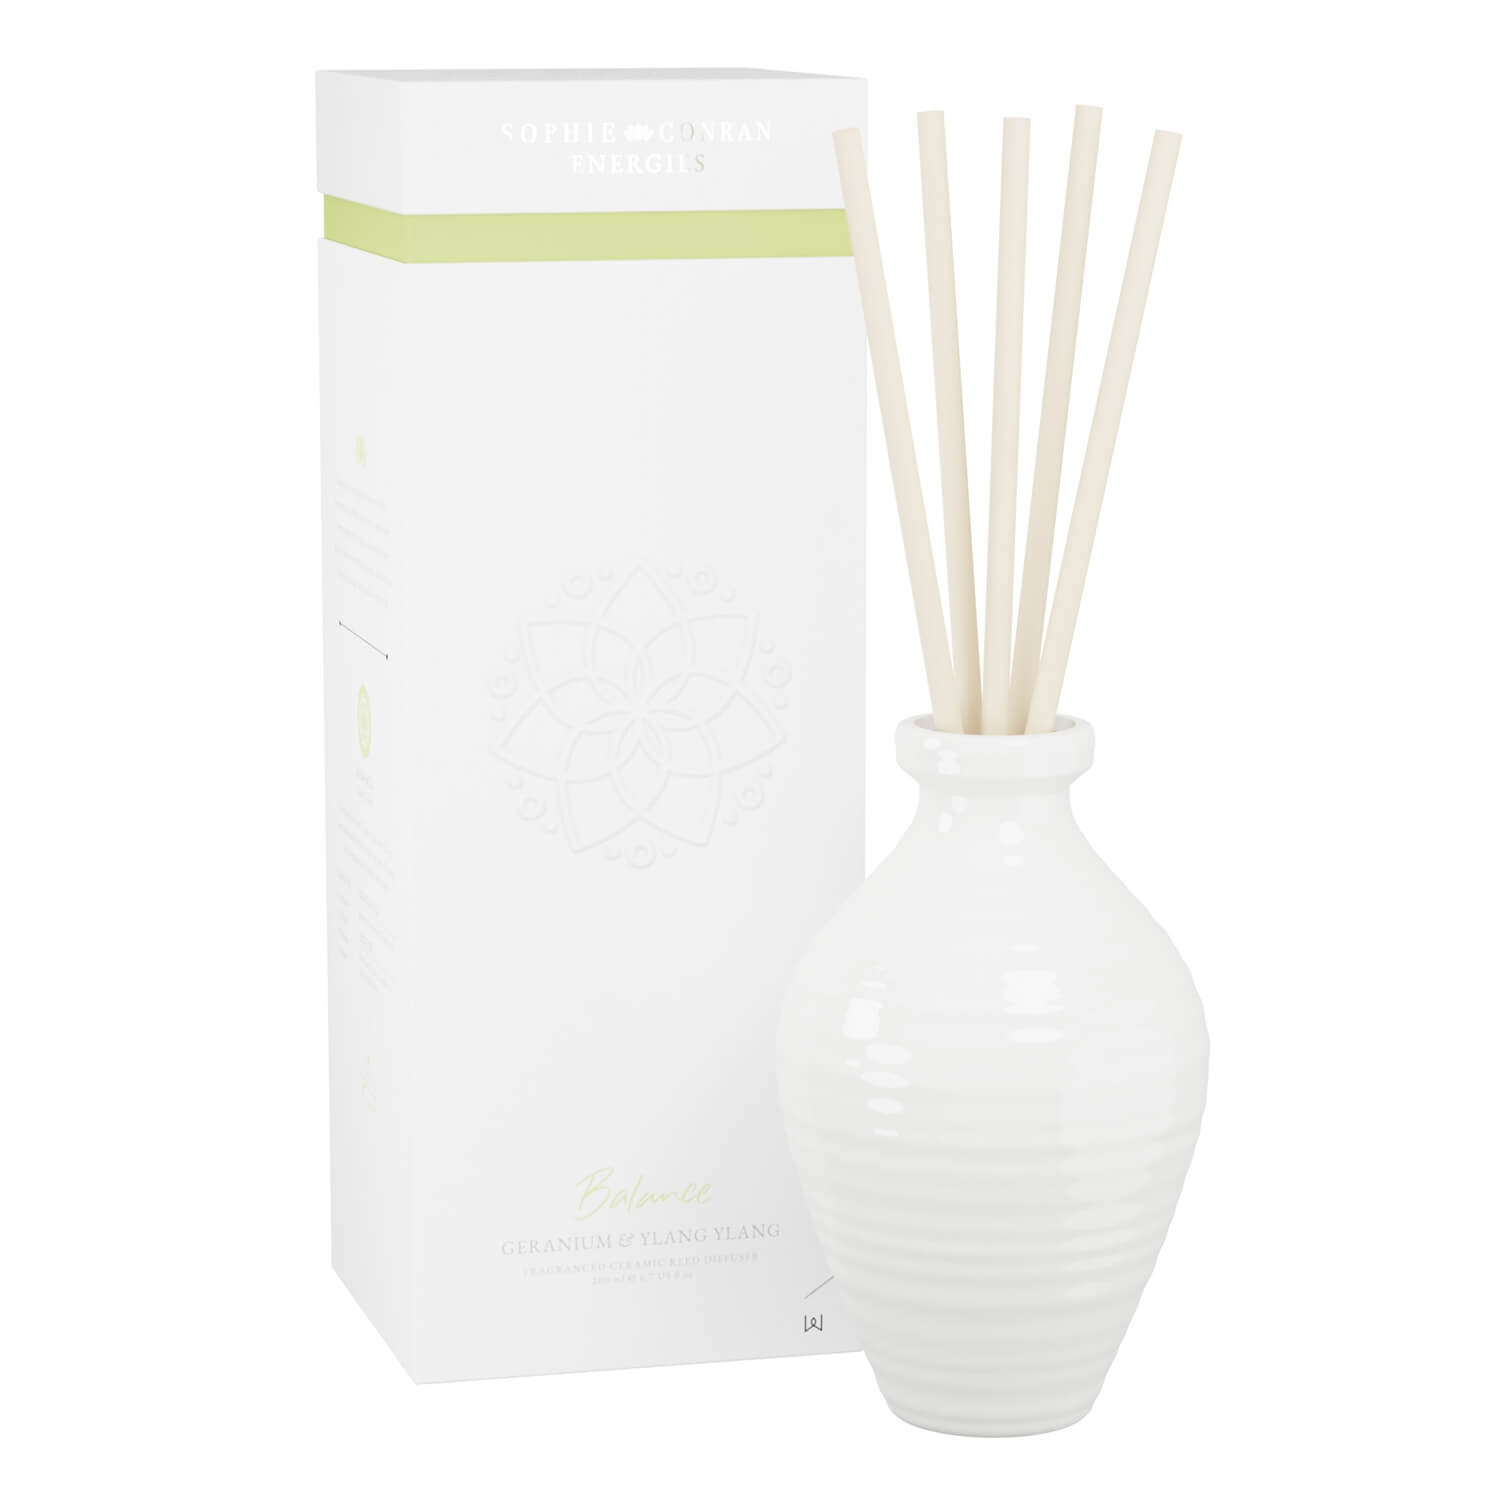 Image of Sophie Conran Reed Diffuser, 200ml, Balance